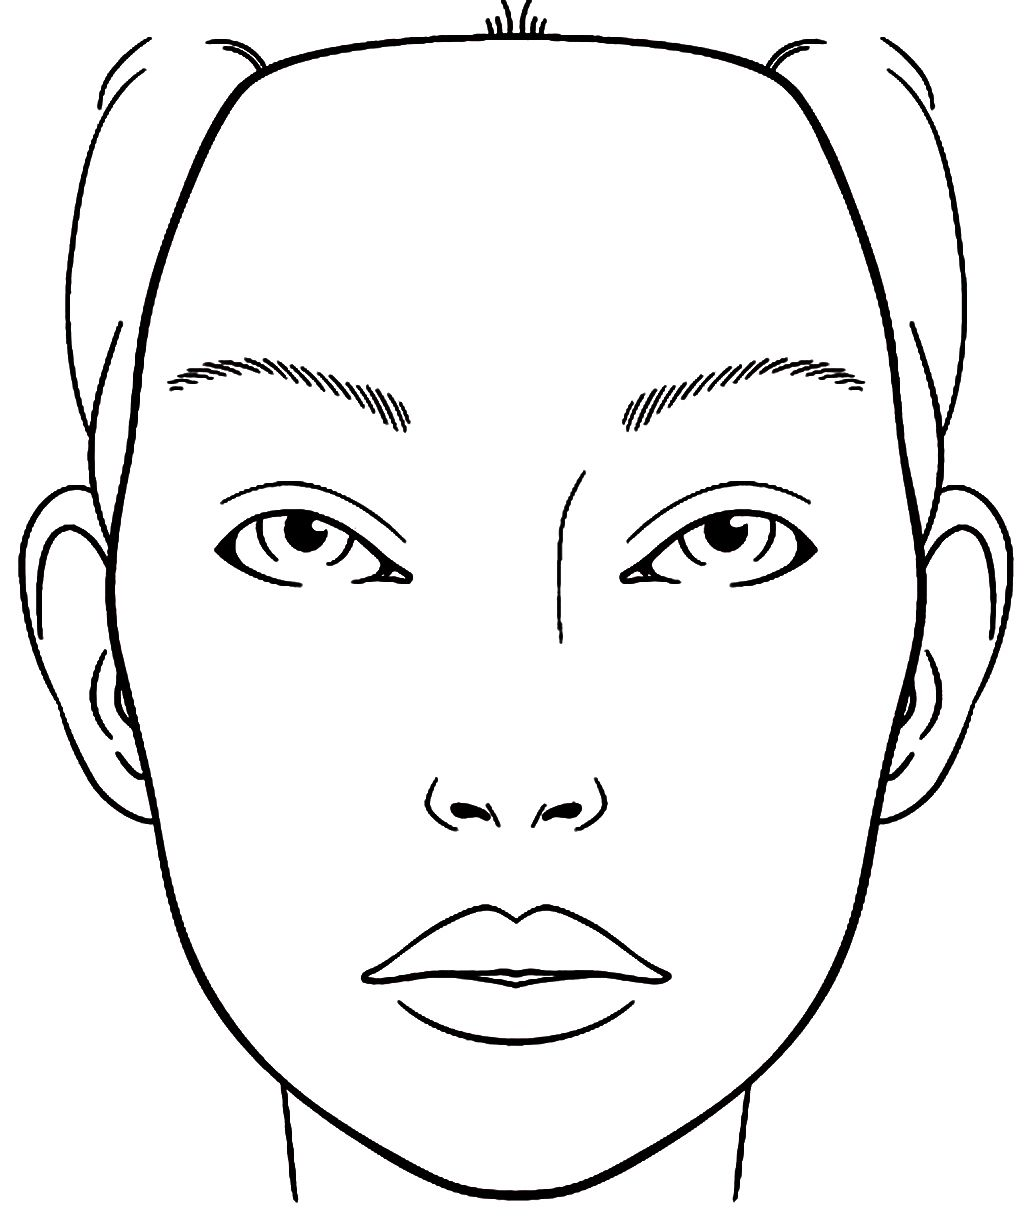 Blank Face Chart Sketch Coloring Page Com Imagens